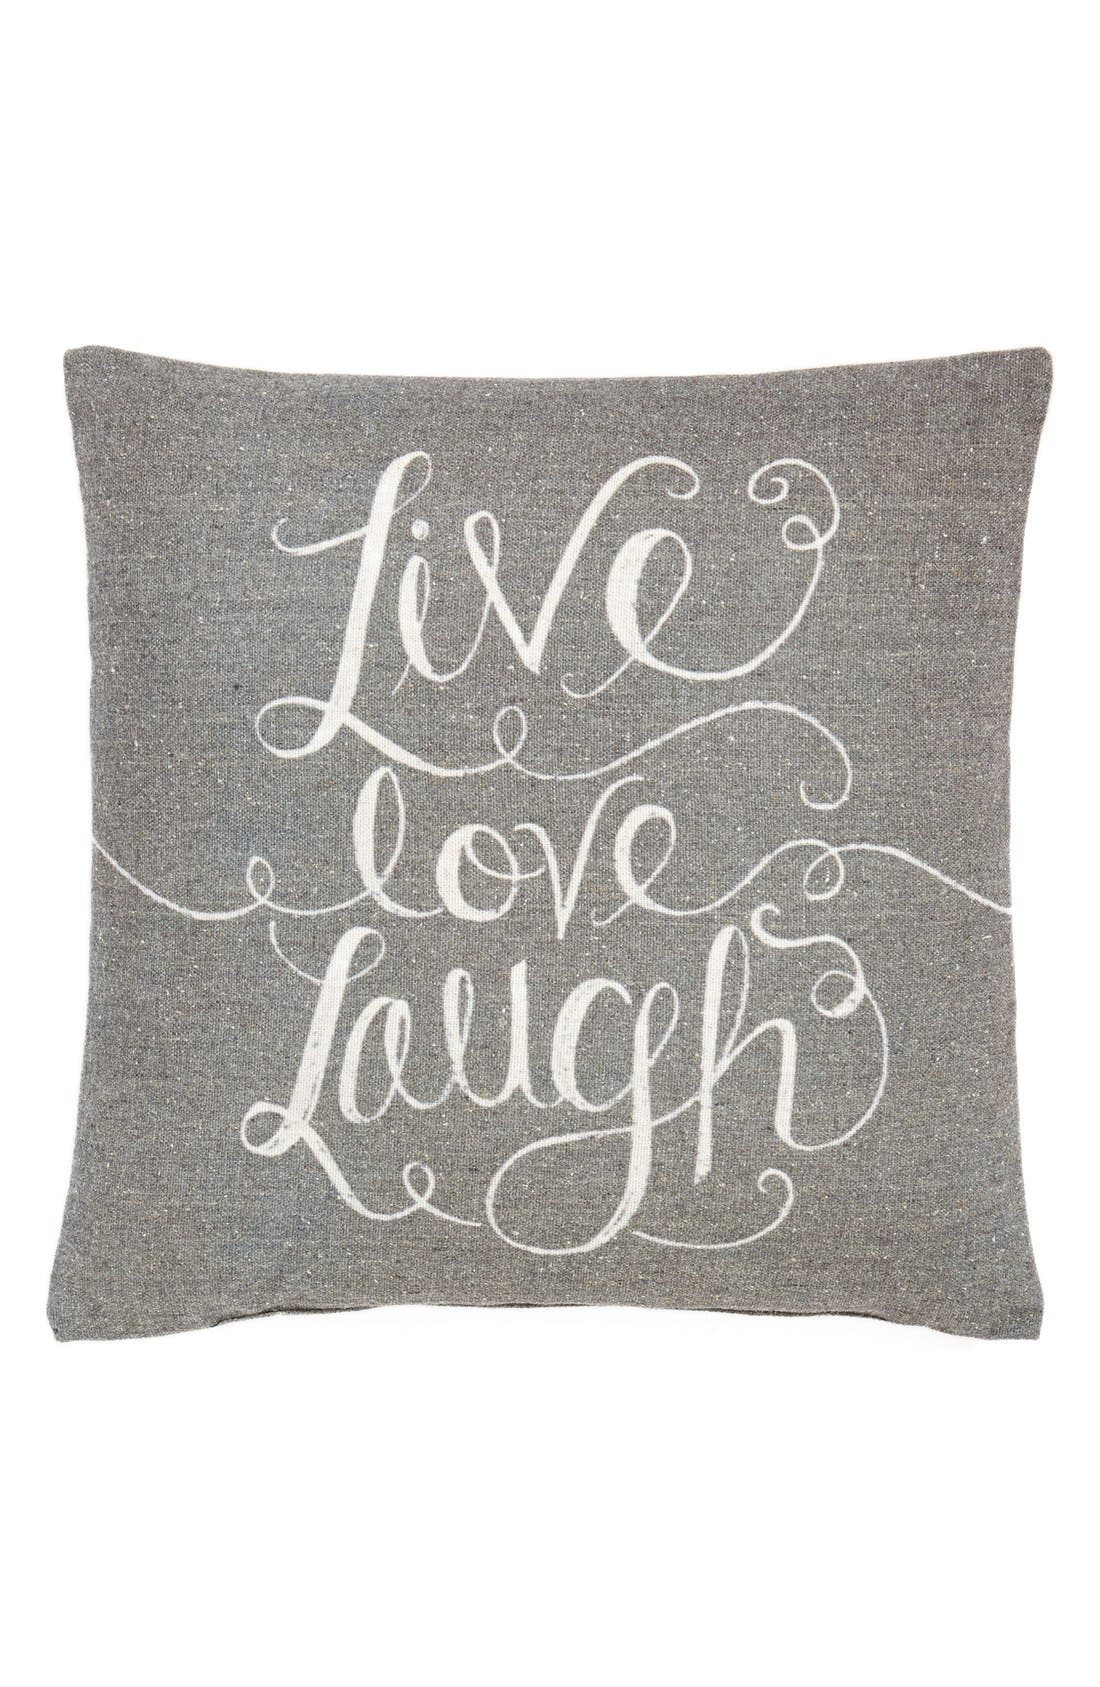 Alternate Image 1 Selected - Primitives by Kathy 'Live, Love, Laugh' Pillow